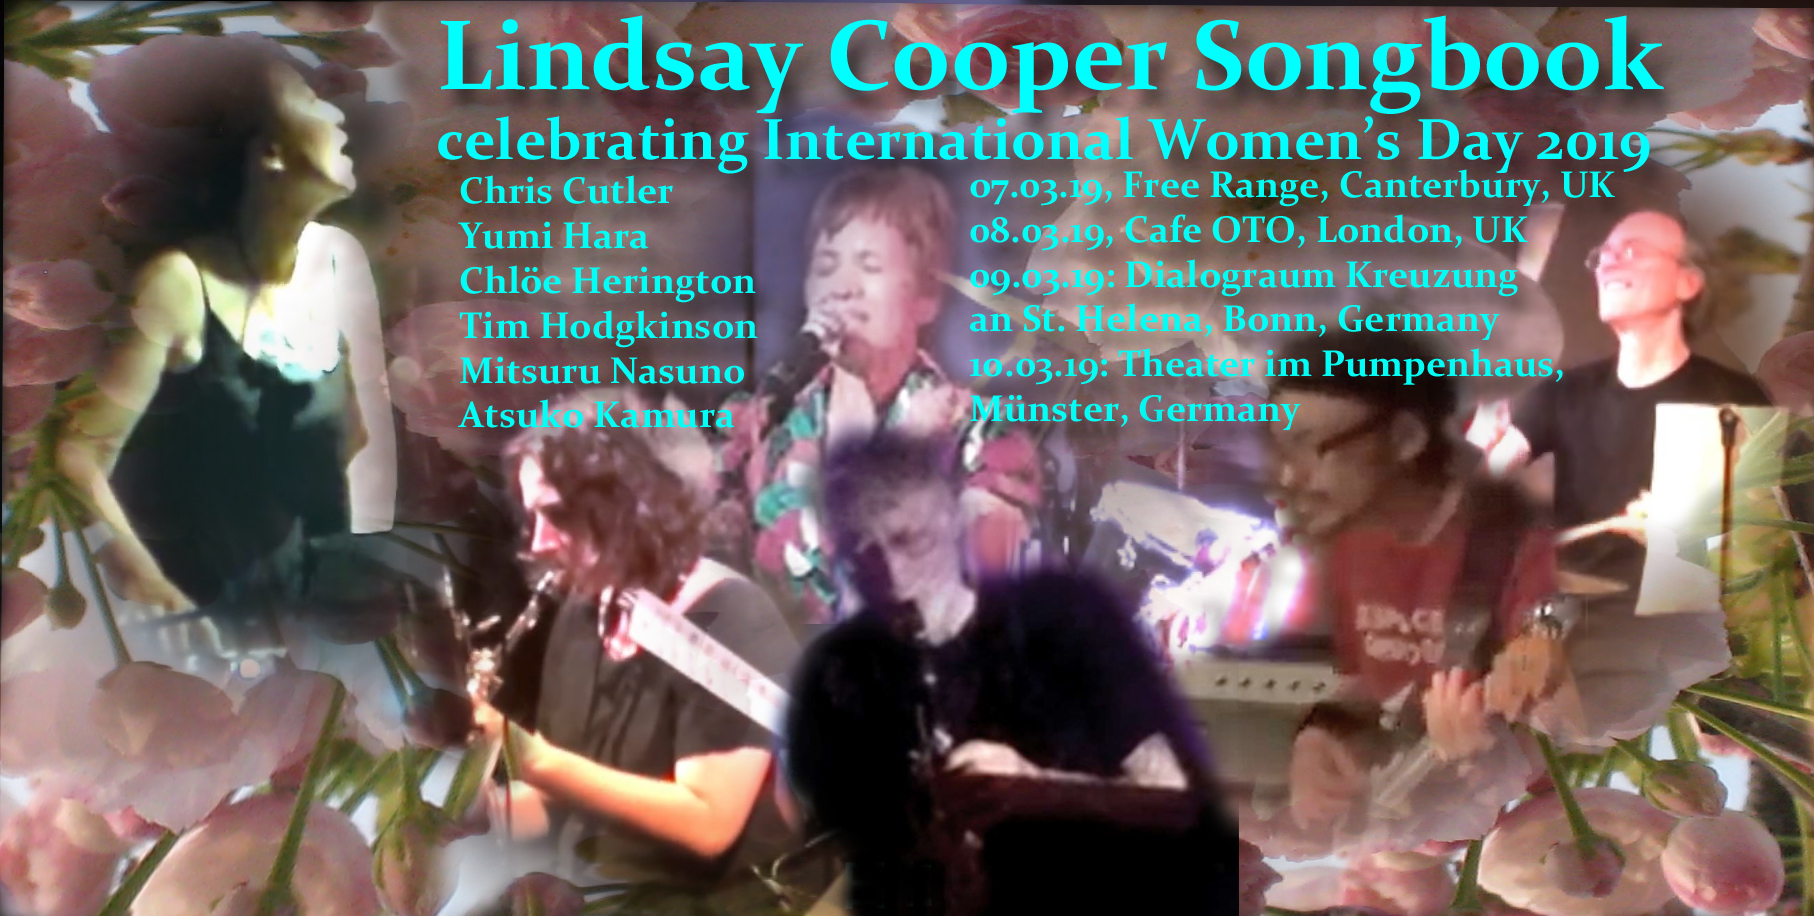 Lindsay Cooper Songbook 2019 tour